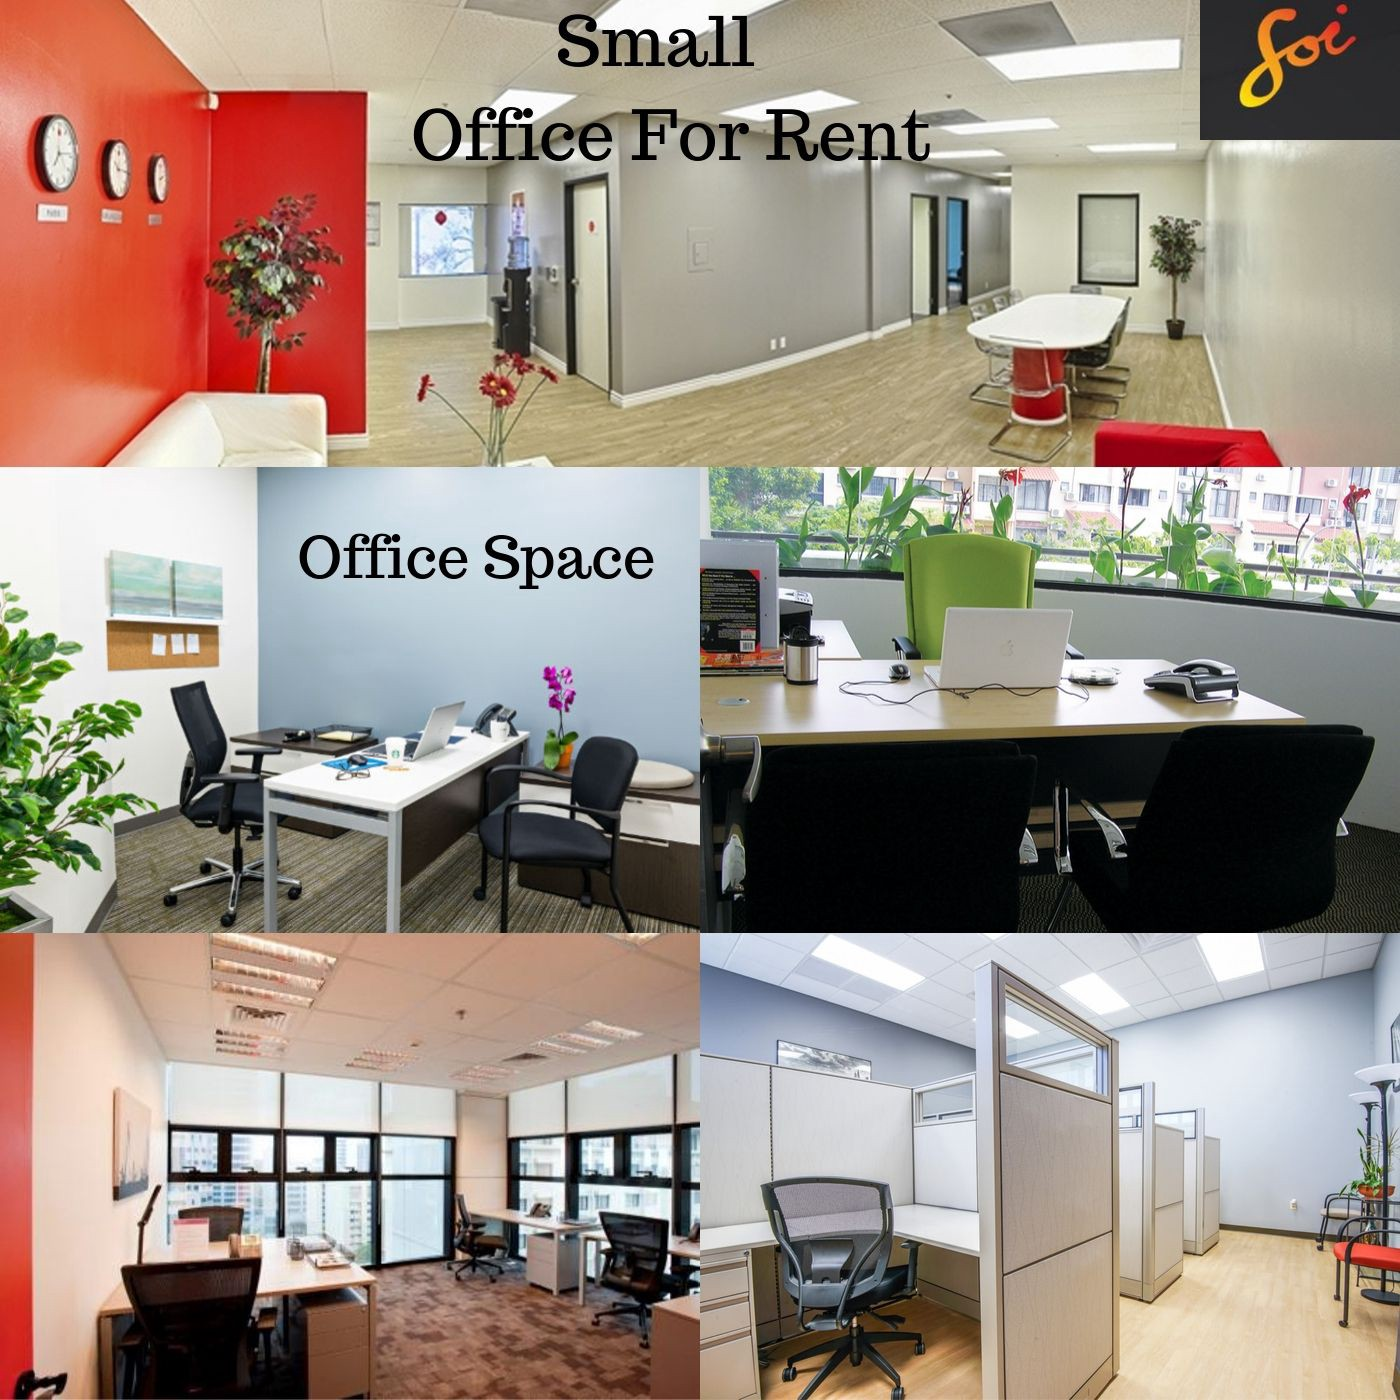 Small Office Space For Rent Office Space By Serviced Offices Medium